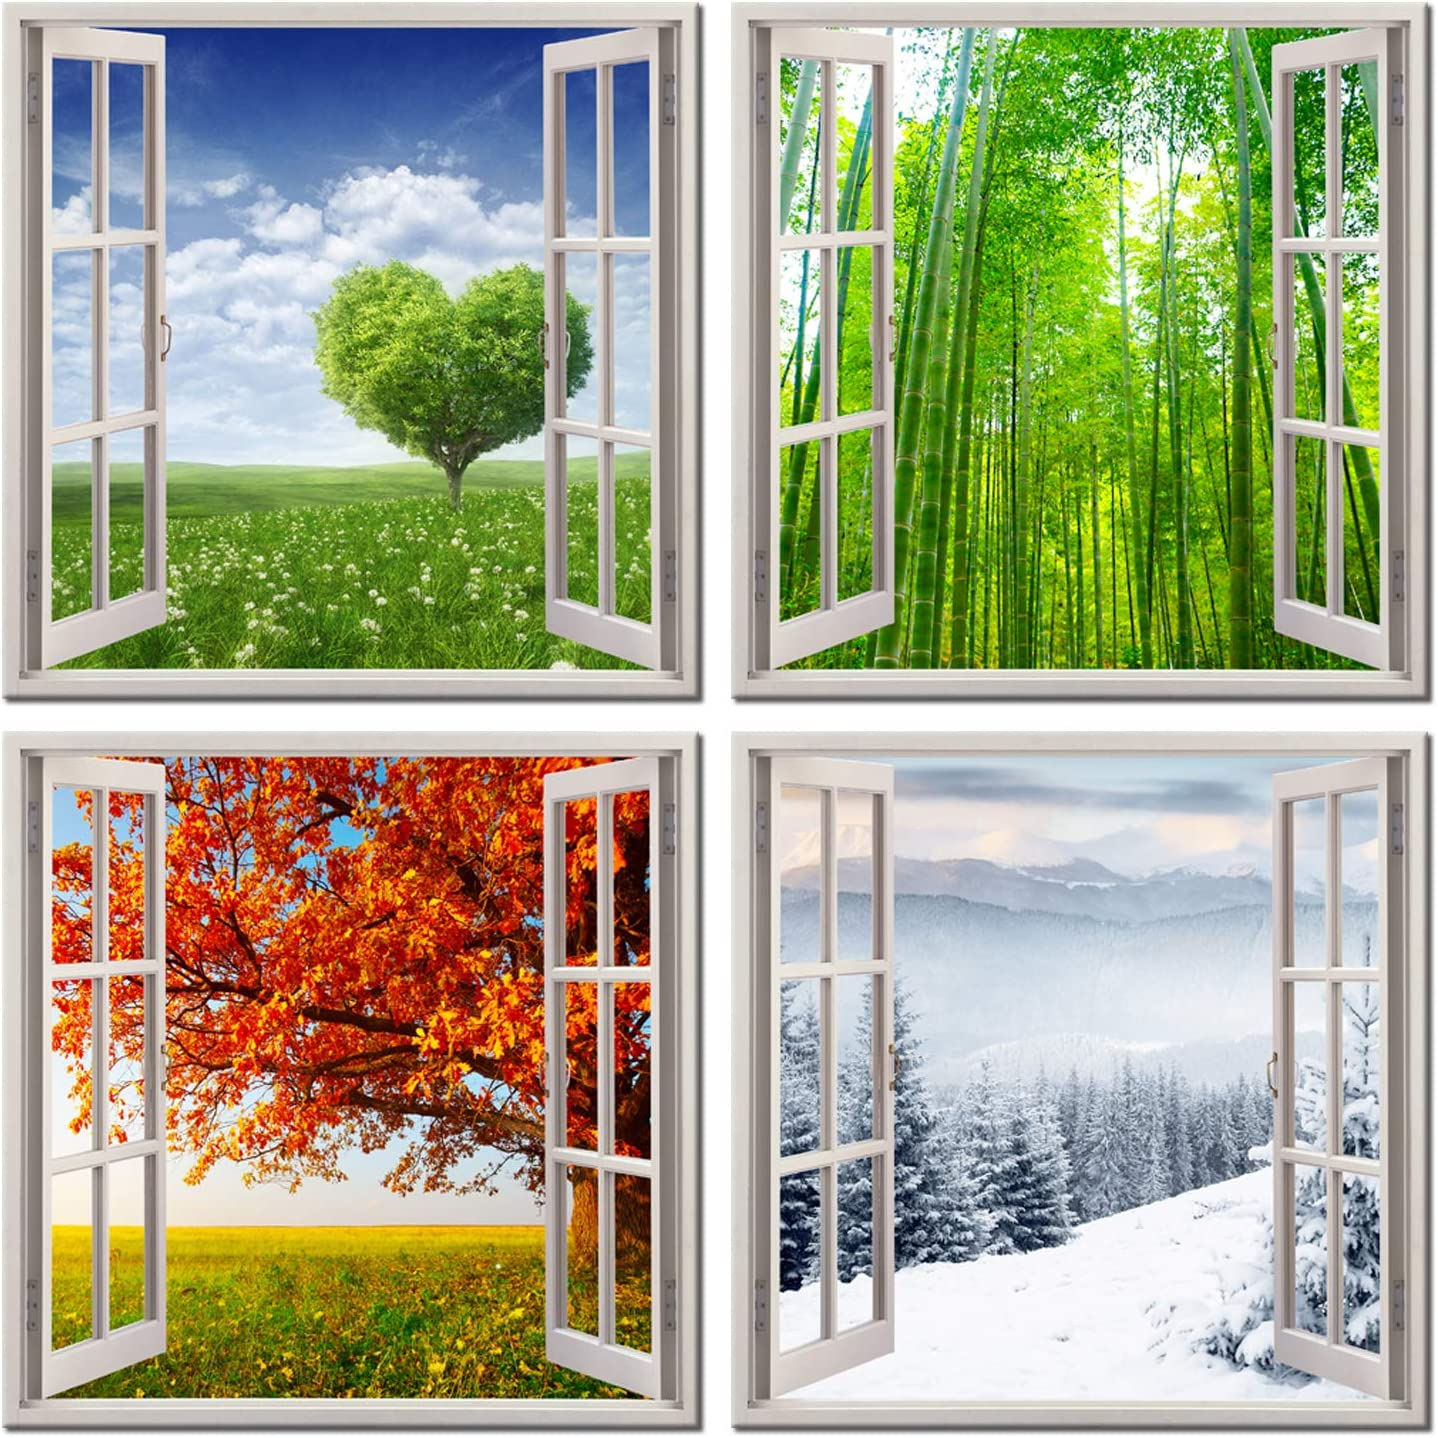 4 Panels Canvas Wall Art Spring Summer Autumn Winter Four Seasons Landscape Color Tree Painting Prints Picture Modern Artwork Framed for Bedroom Home Decor 12x12in x4pcs